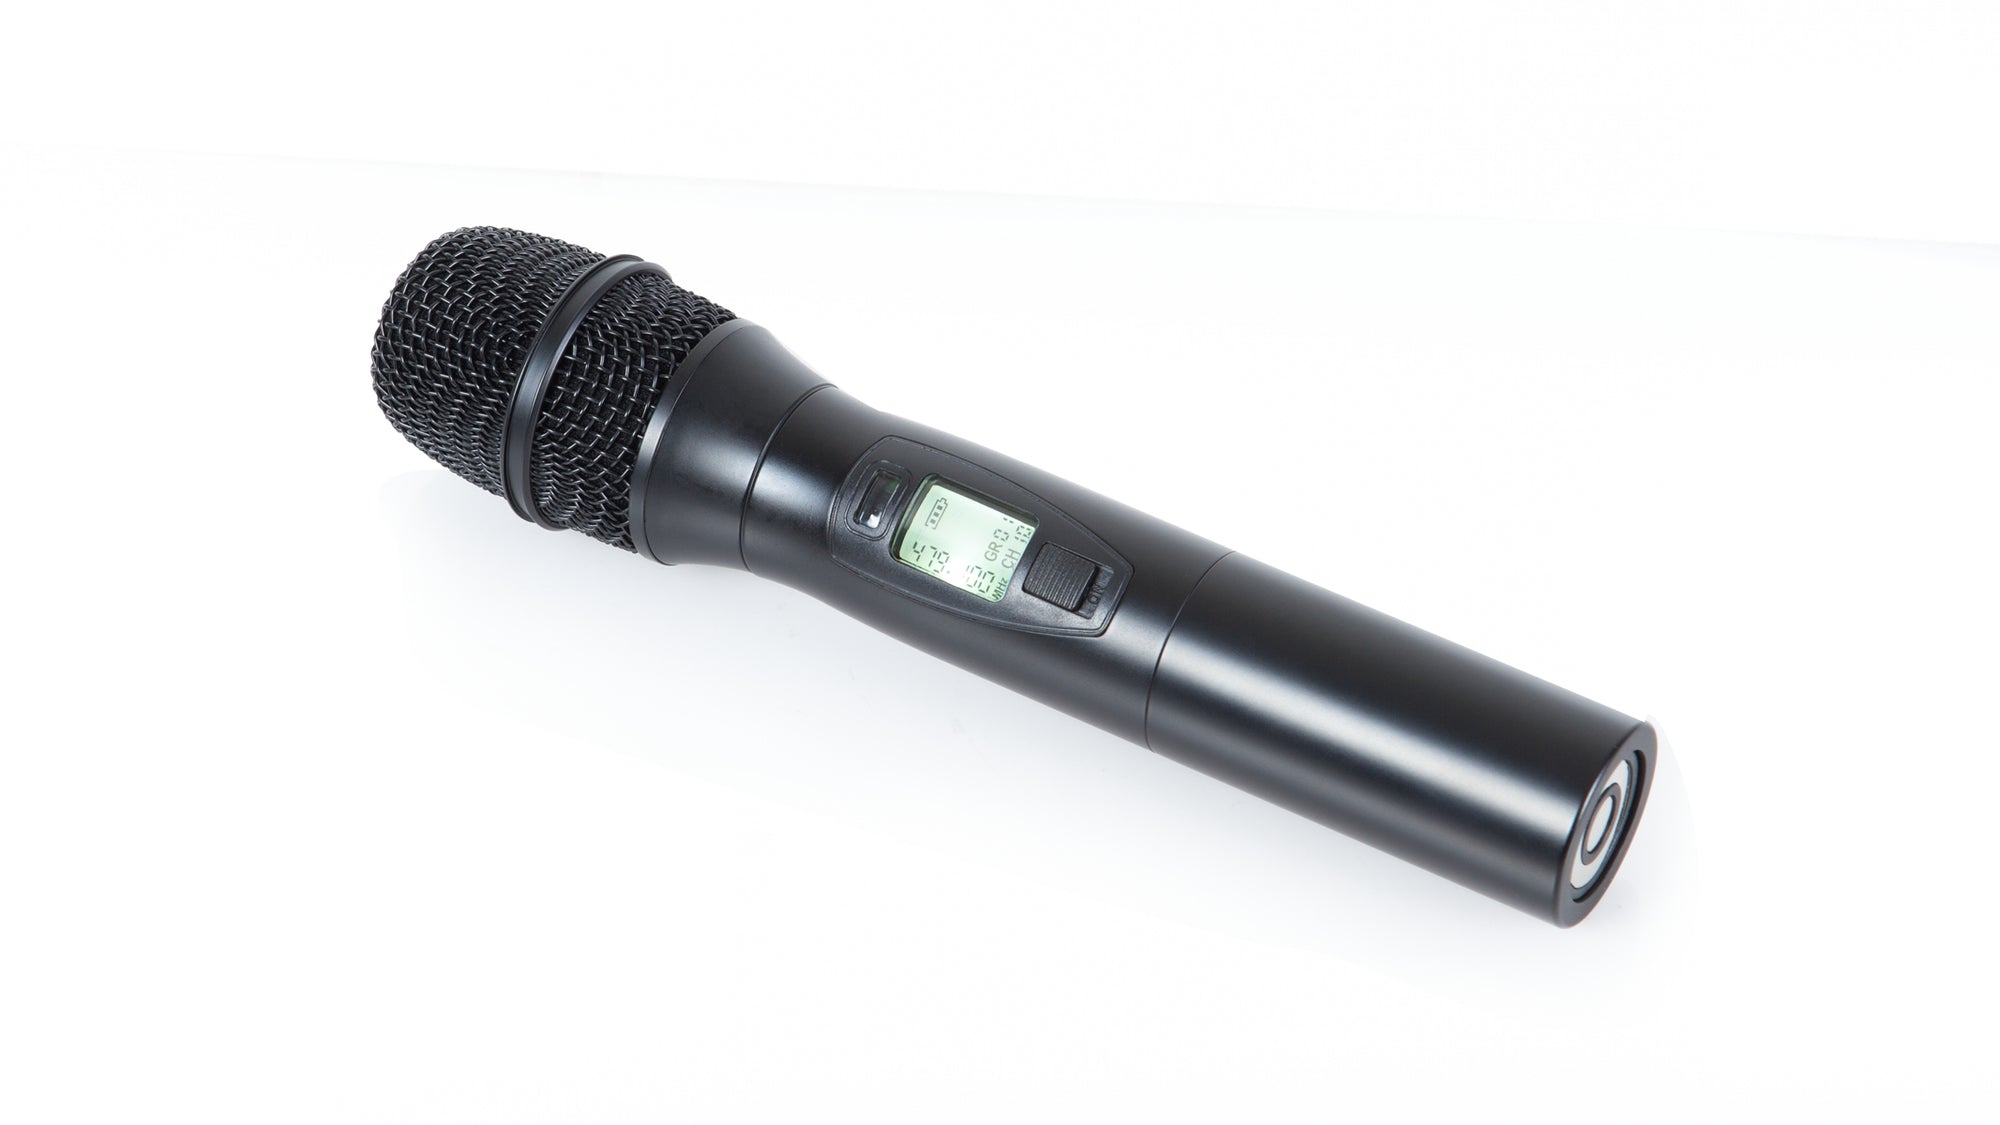 Carvin UX800MCH Wireless Handheld Microphone 470-490MHz True Diversity